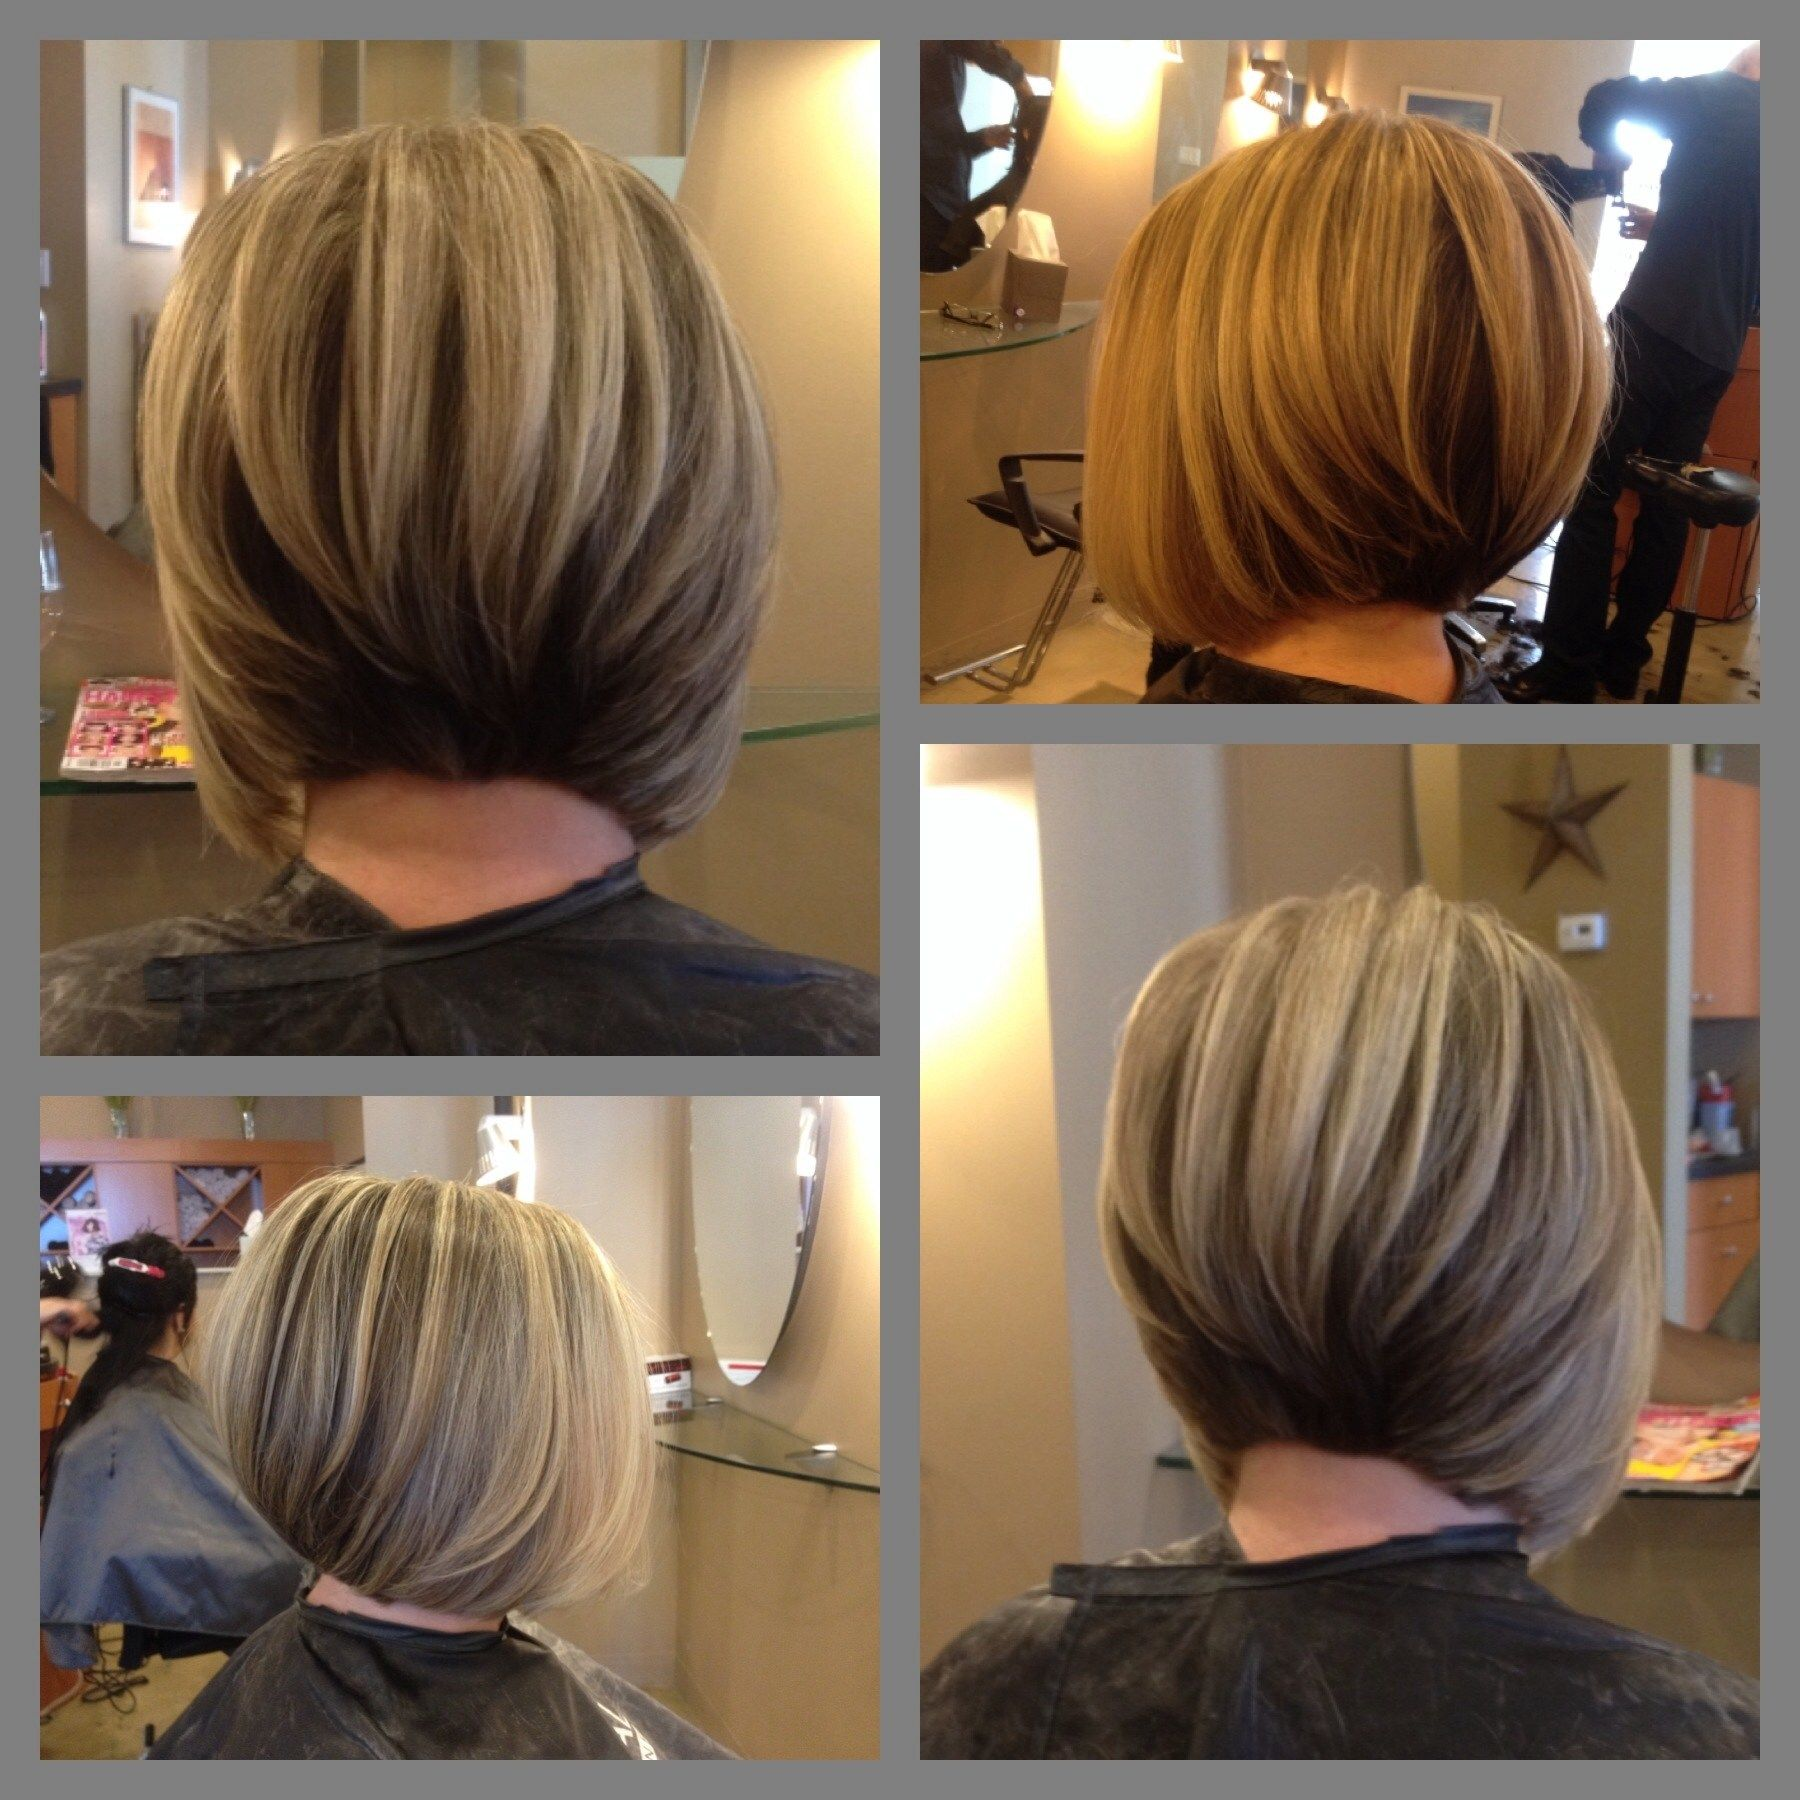 10+ New bob hairstyles for 2018 info